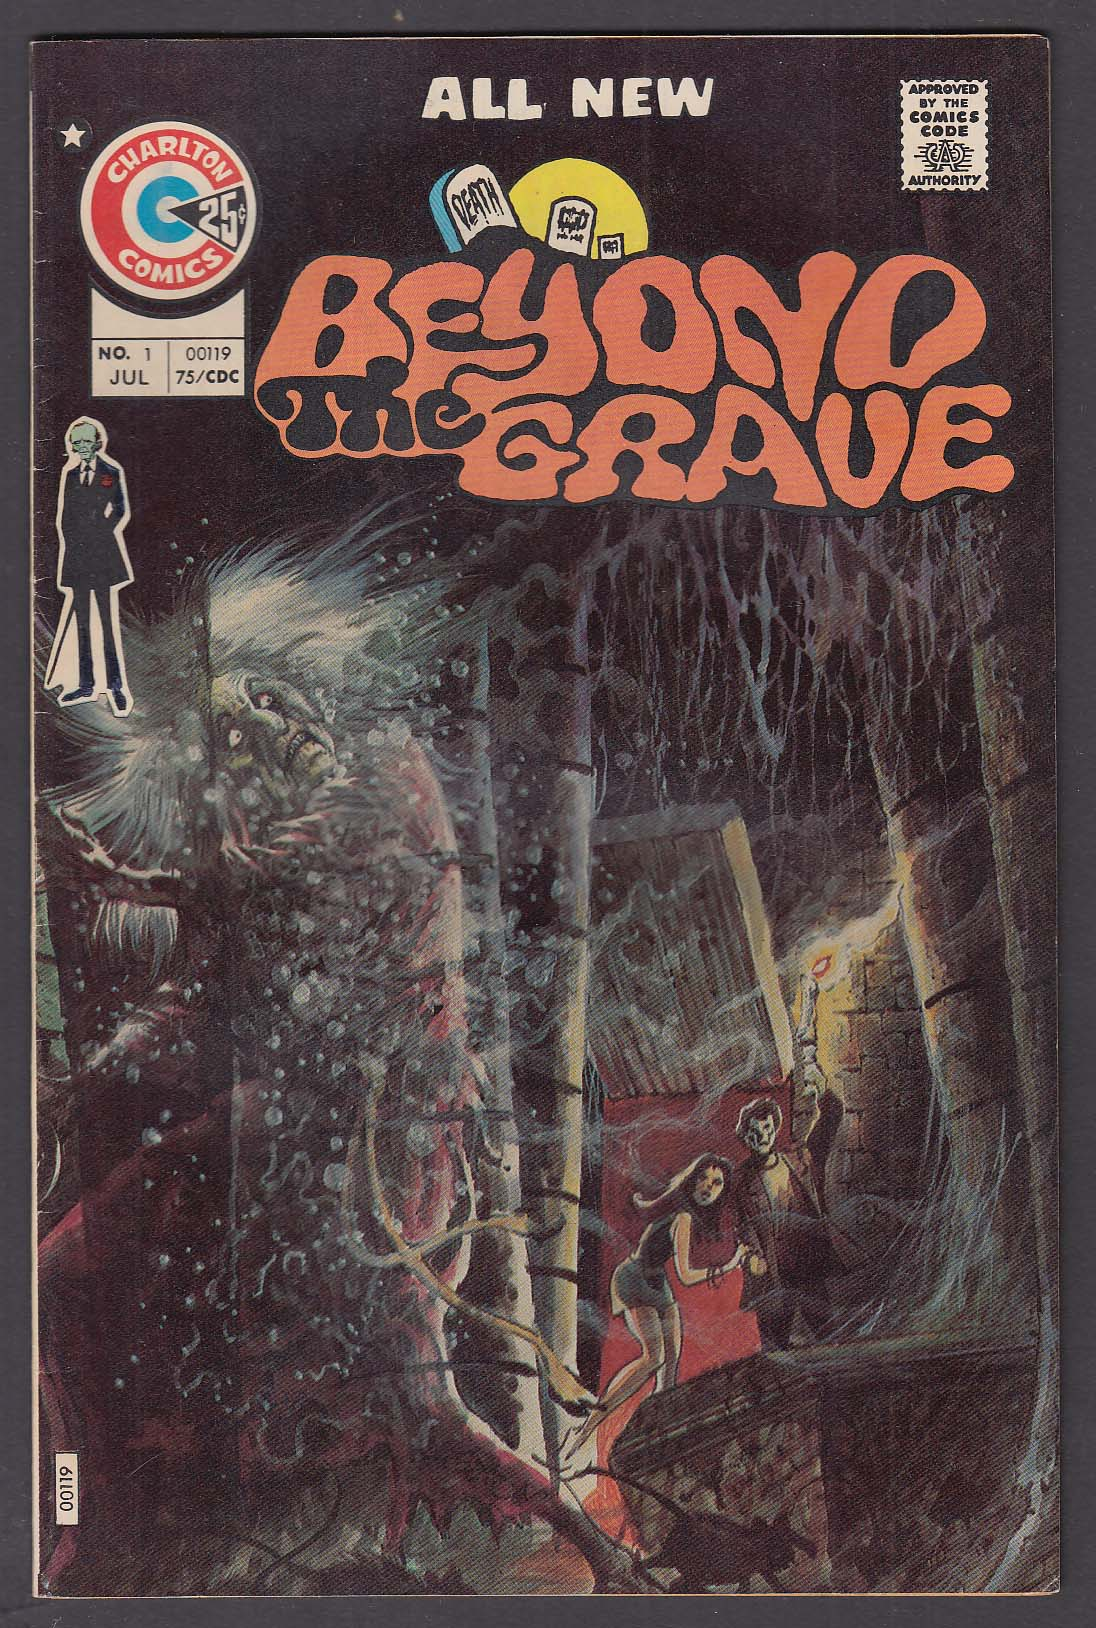 BEYOND THE GRAVE #1 Charlton comic book 7 1975